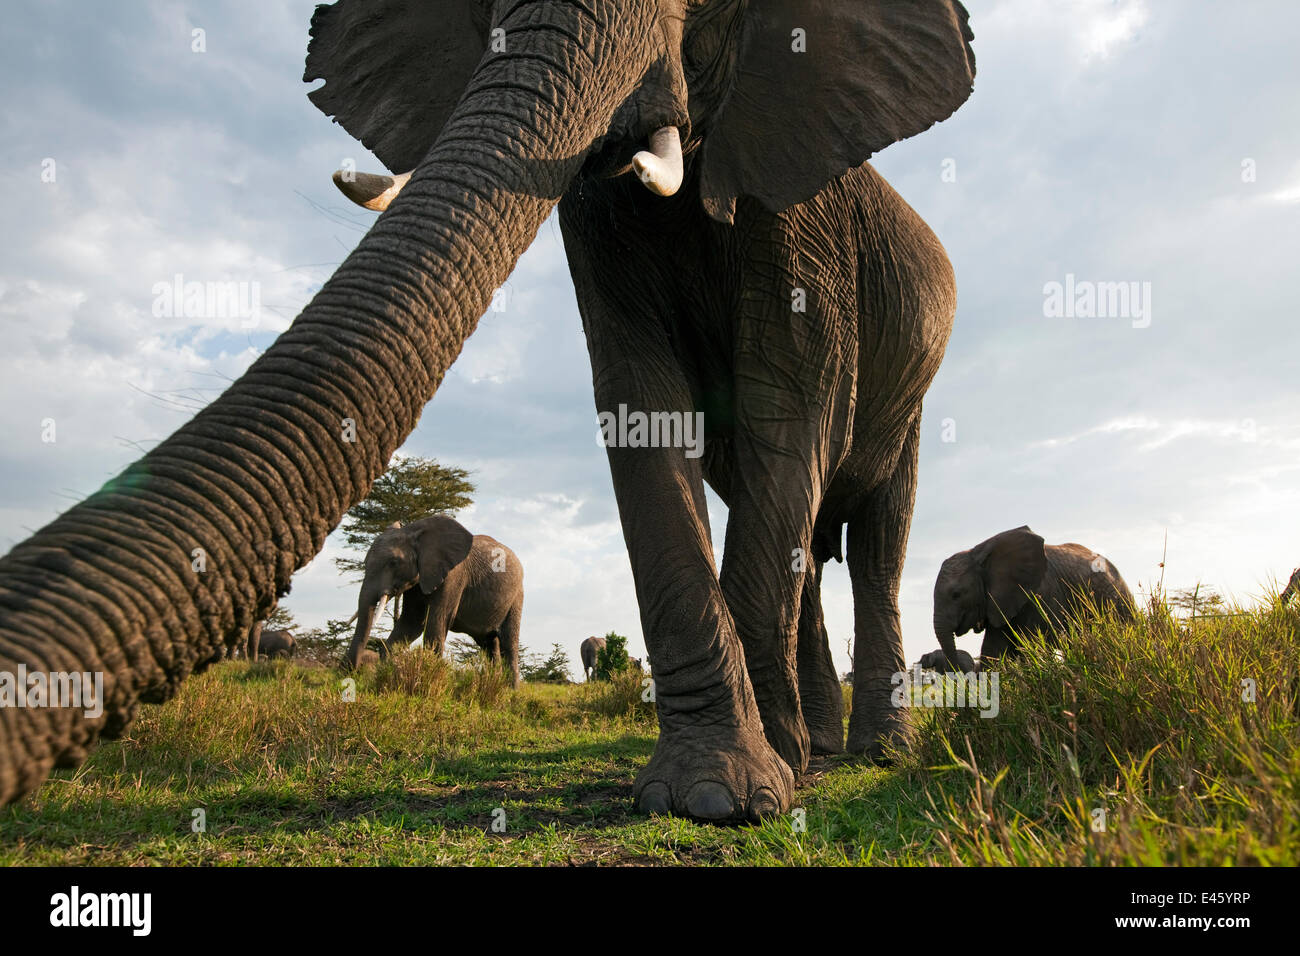 African elephant (Loxodonta africana) investigating with its trunk, Masai Mara National Reserve, Kenya. March - Stock Image